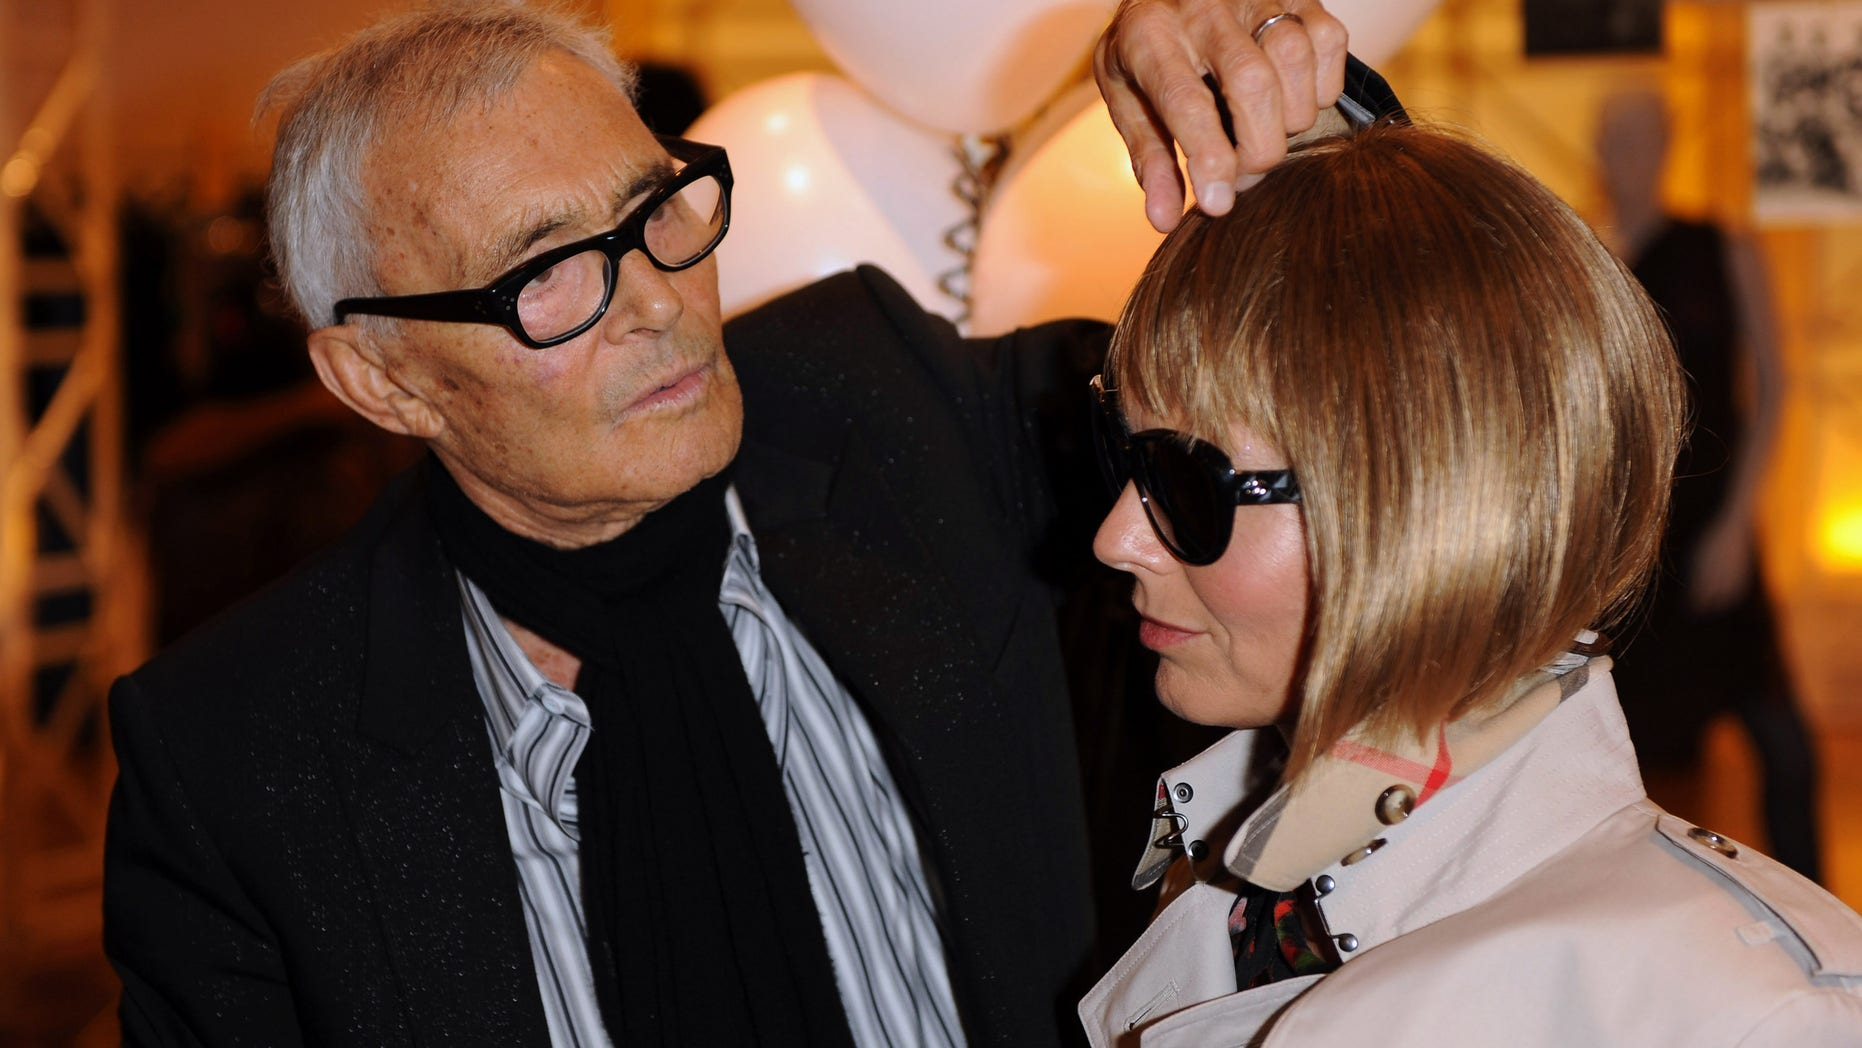 LONDON, ENGLAND - SEPTEMBER 08: Vidal Sassoon attends his autobiography signing with an Anna